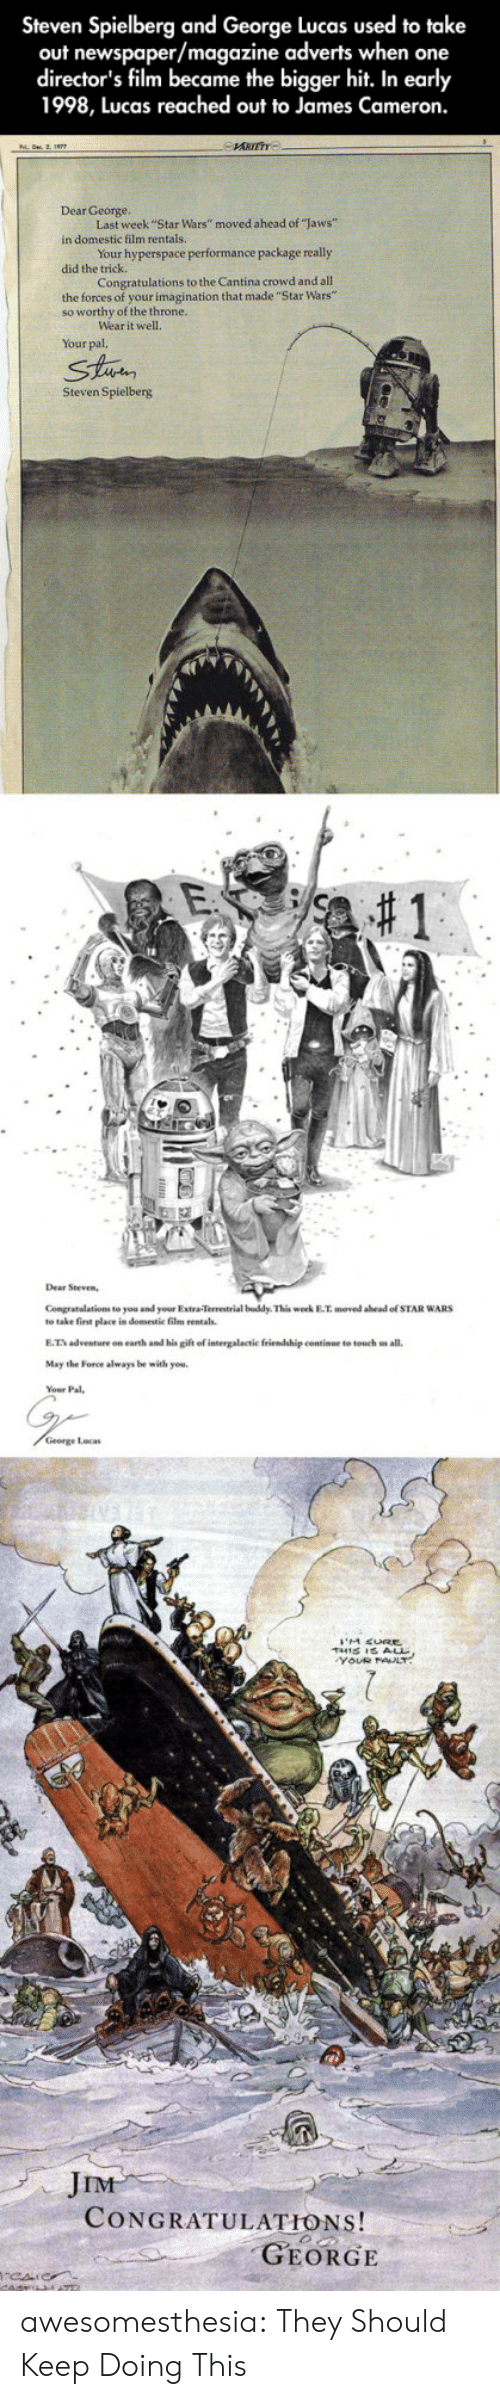 "Star Wars, Tumblr, and Blog: Steven Spielberg and George Lucas used to take  out newspaper/magazine adverts when one  director's film became the bigger hit. In early  1998, Lucas reached out to James Cameron.  Dear George.  Last week ""Star Wars"" moved ahead of ""laws""  in domestic film rentals  Your hyperspace performance package really  did the  Congratulations to the Cantina crowd and all  the forces of your imagination that made """"Star Wars""  so worthy of the throne.  ear it well.  Your pal,  Strin  Steven Spielberg  Congratalations to you and your Extra-Terrestrial buddy This week E.T. moved abead of STAR WARS  to take first elace in domestic film rentals.  E.T adventure on earth and his gift of intergalactic friendship continue to touch us all.  May the Force always be with you.  George Locas  JIM  CONGRATULATIONS!  GEORGE awesomesthesia:  They Should Keep Doing This"